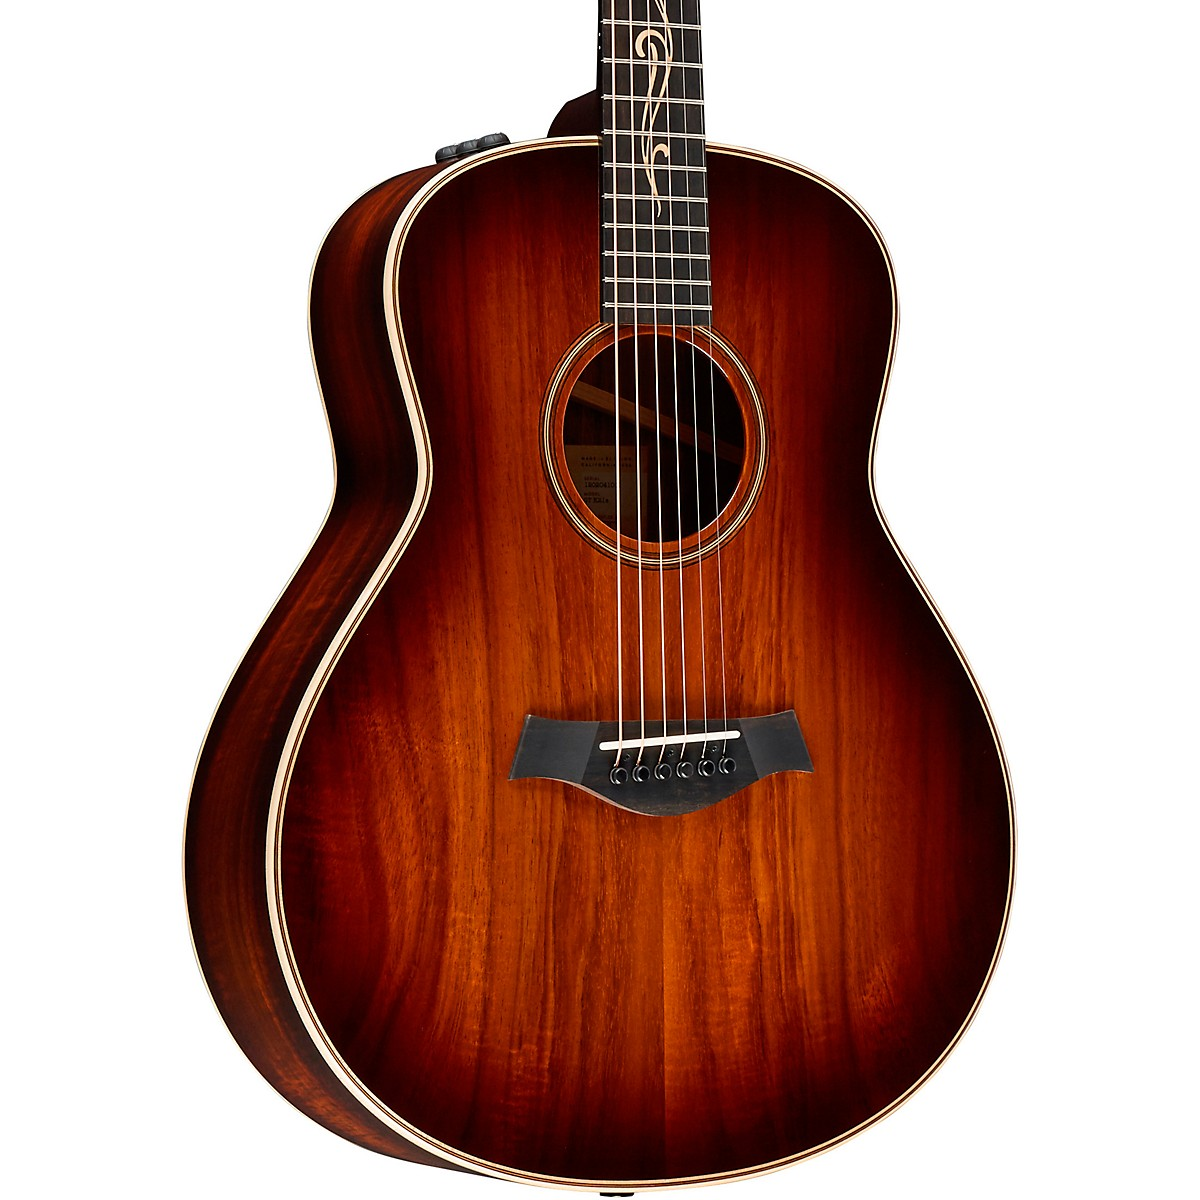 Taylor GT K21e Grand Theater Acoustic-Electric Guitar Regular